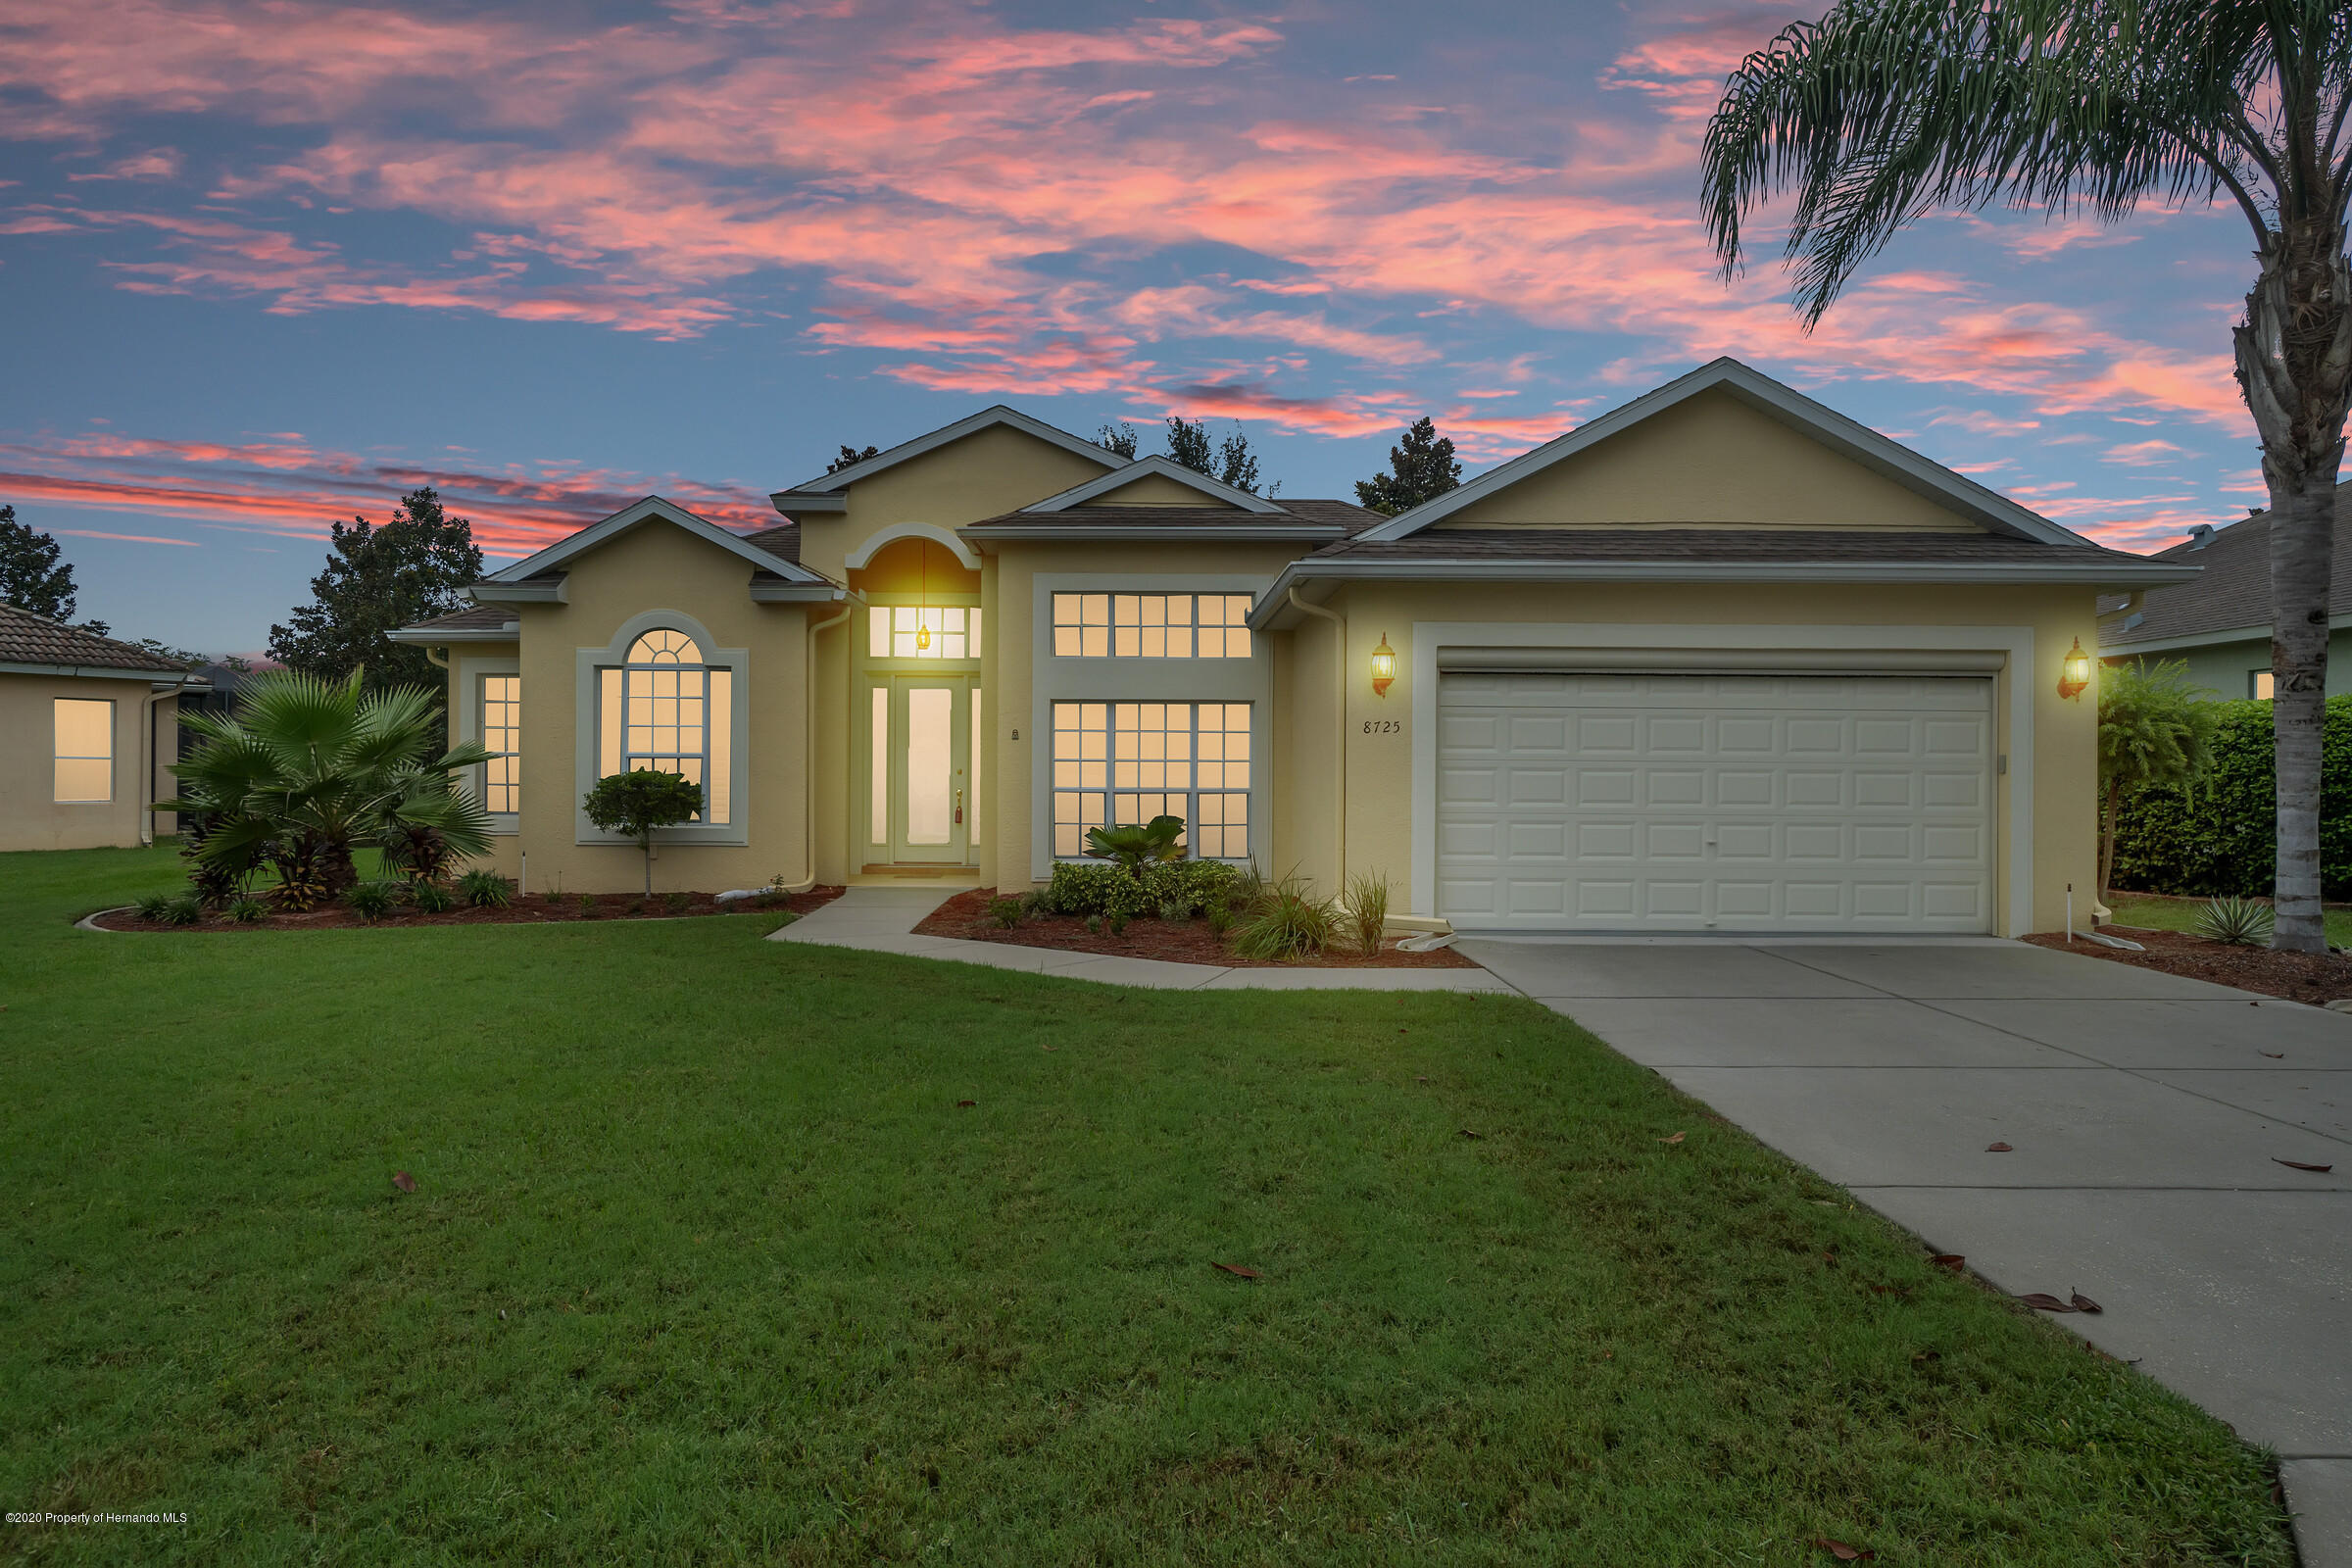 Details for 8725 Mississippi, Spring Hill, FL 34613